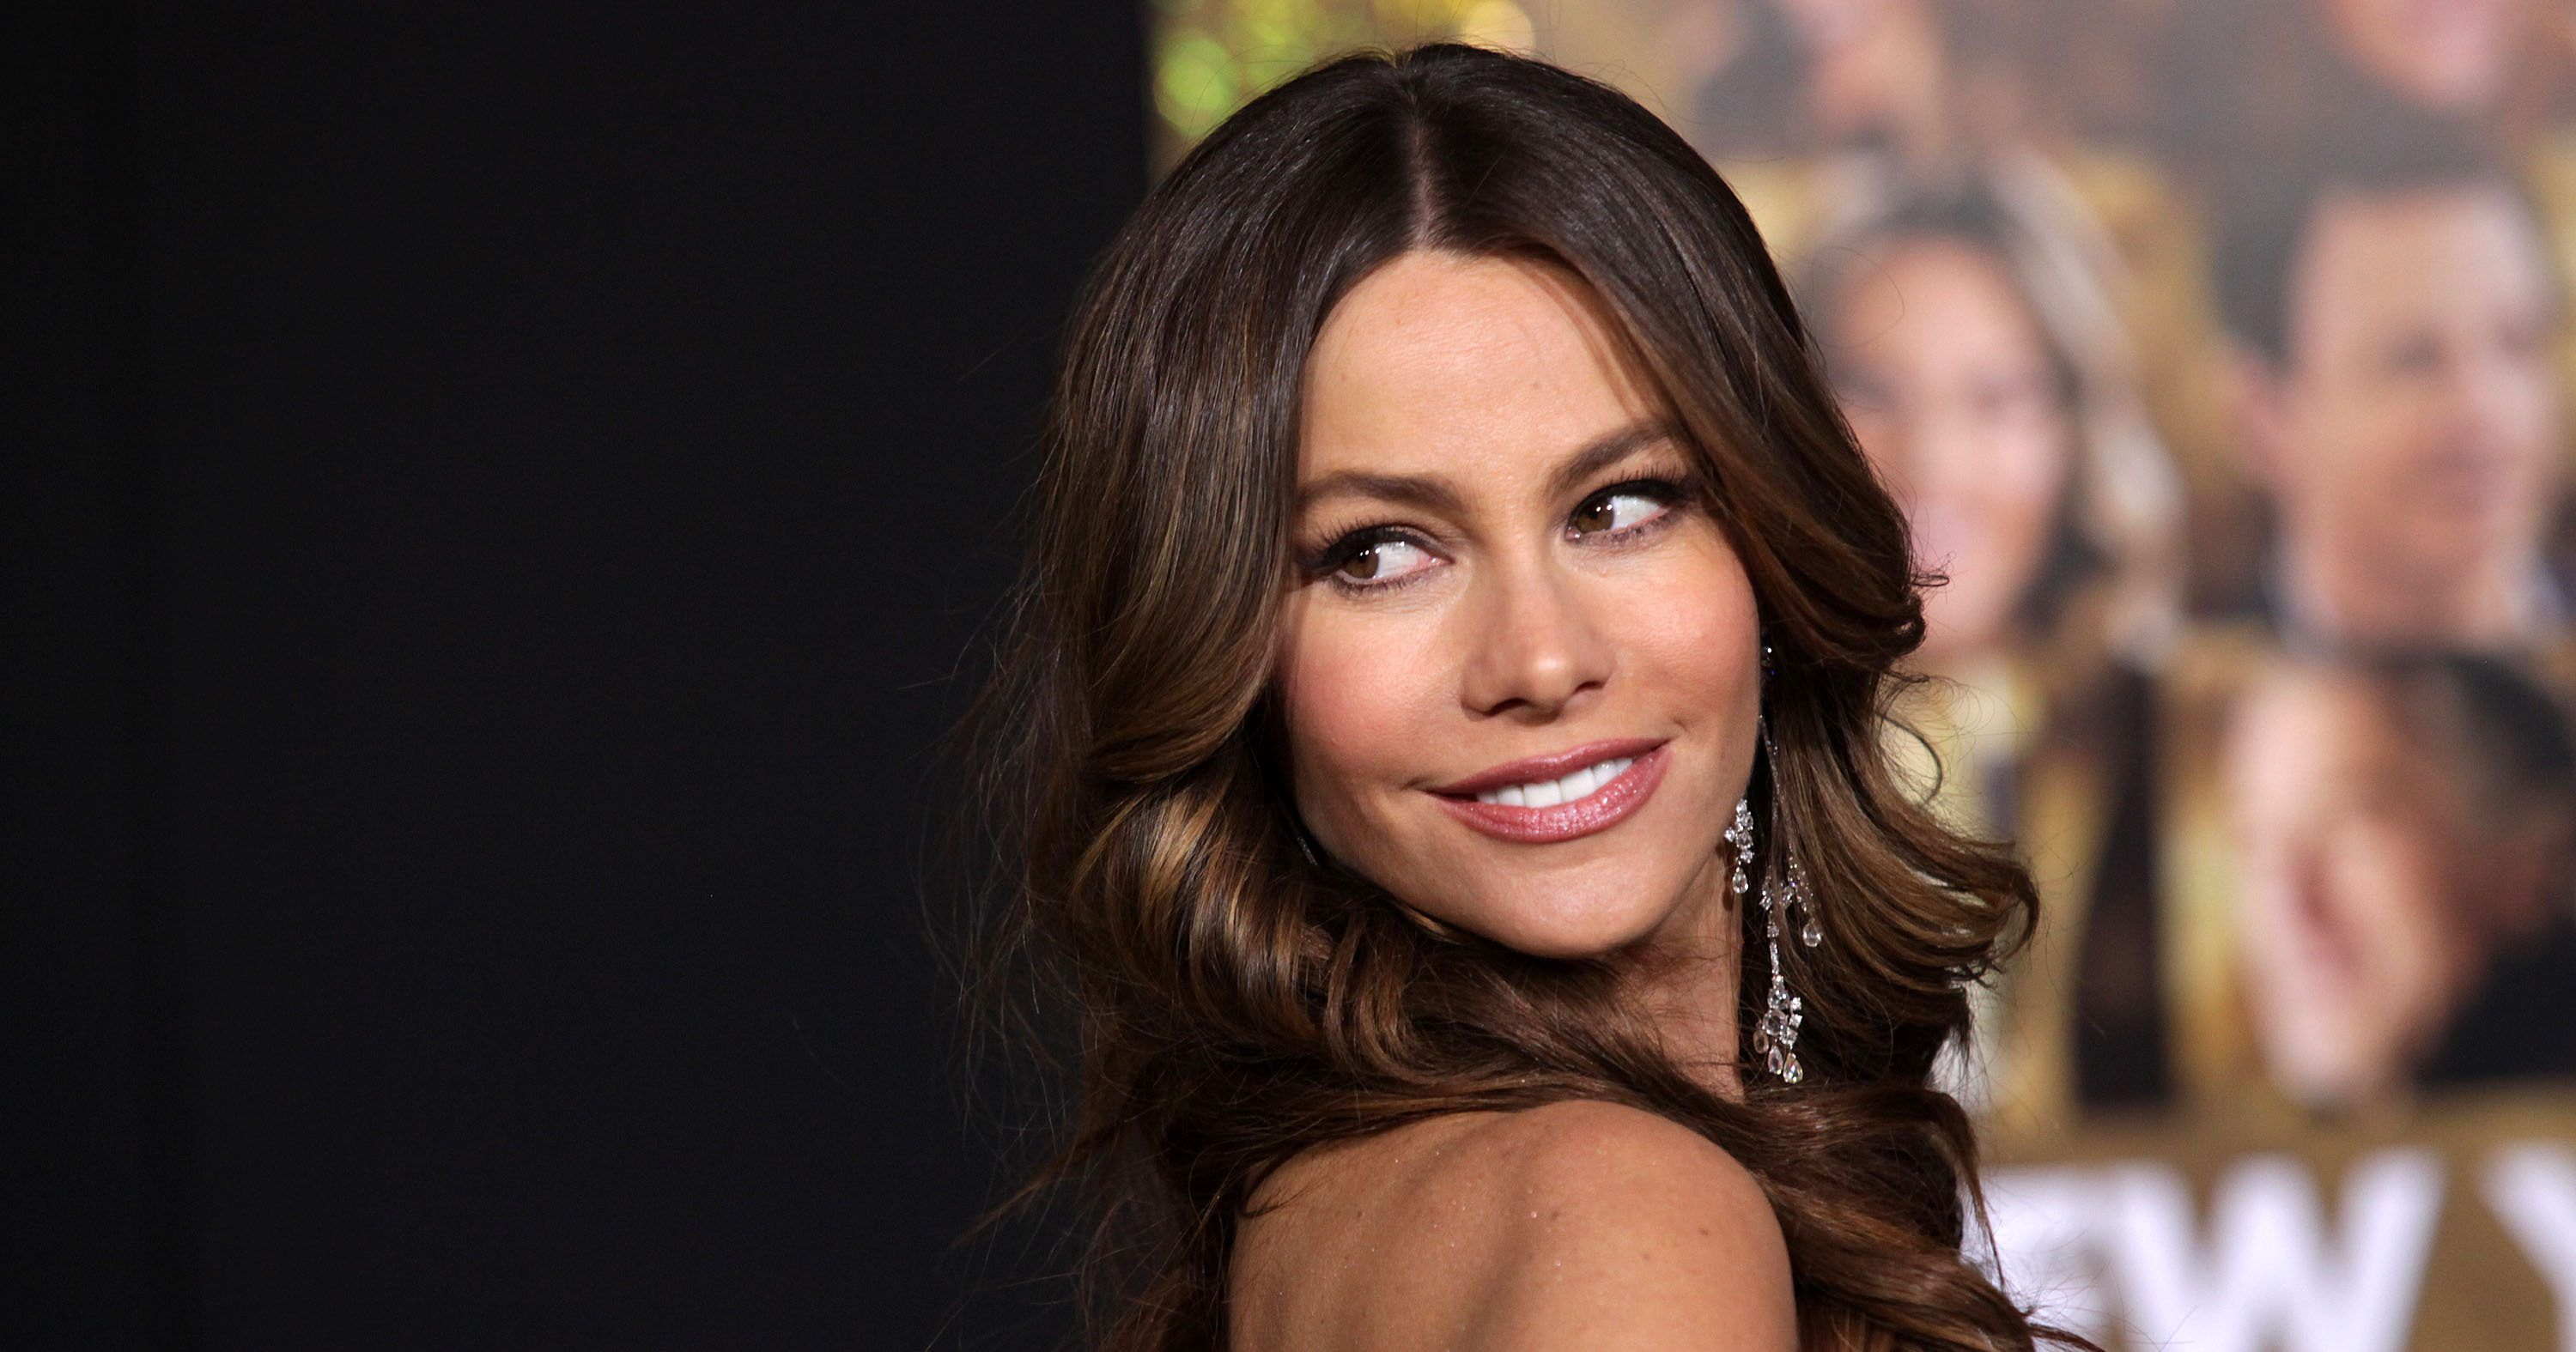 Sofia Vergara & Other Actors Who Refused To Diet For A Movie Role